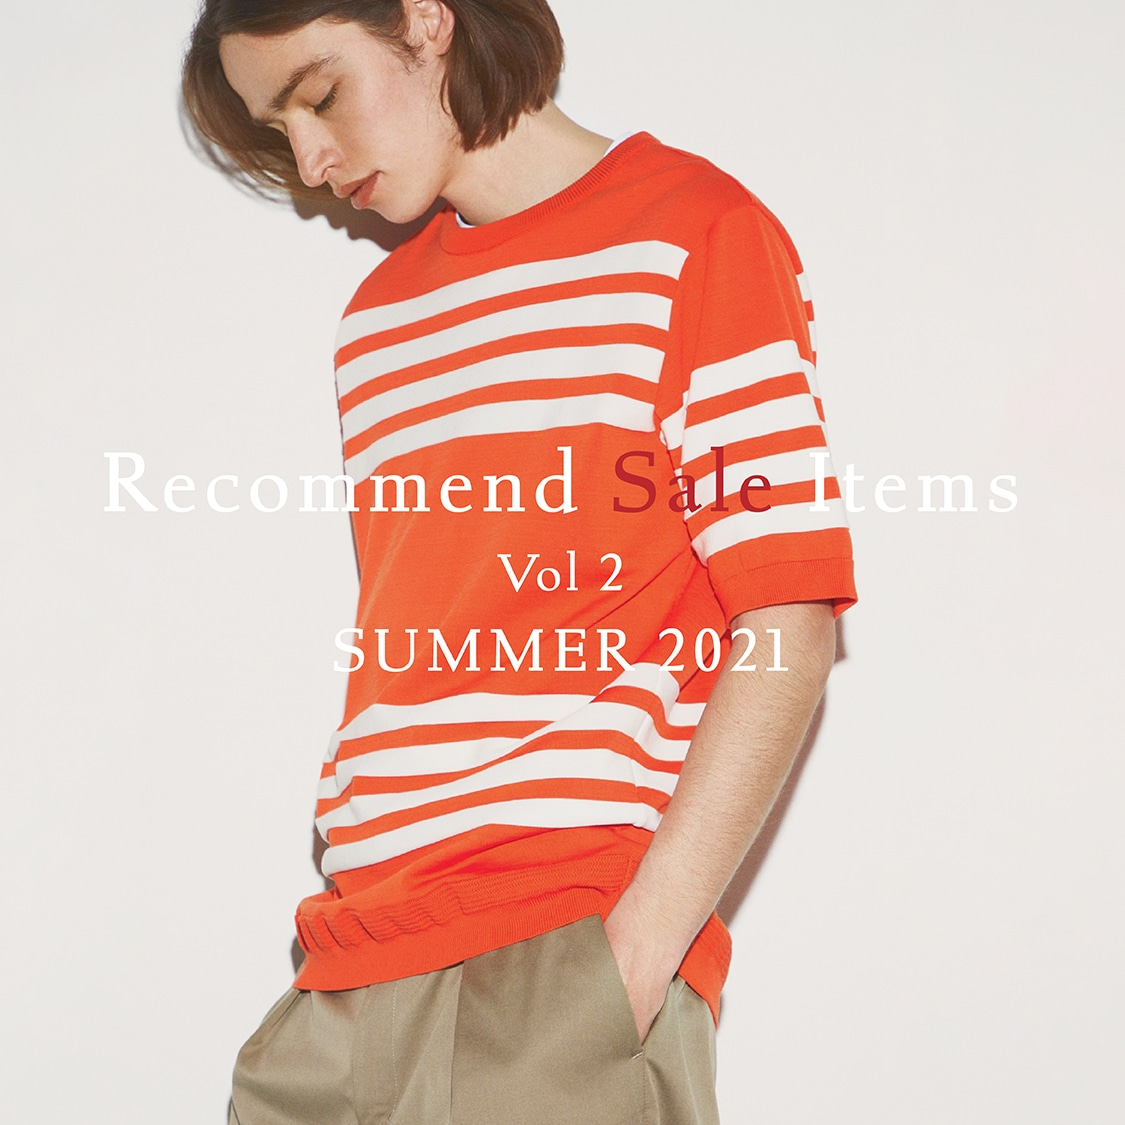 Recommend Sale Items for men Vol2 SUMMER 2021